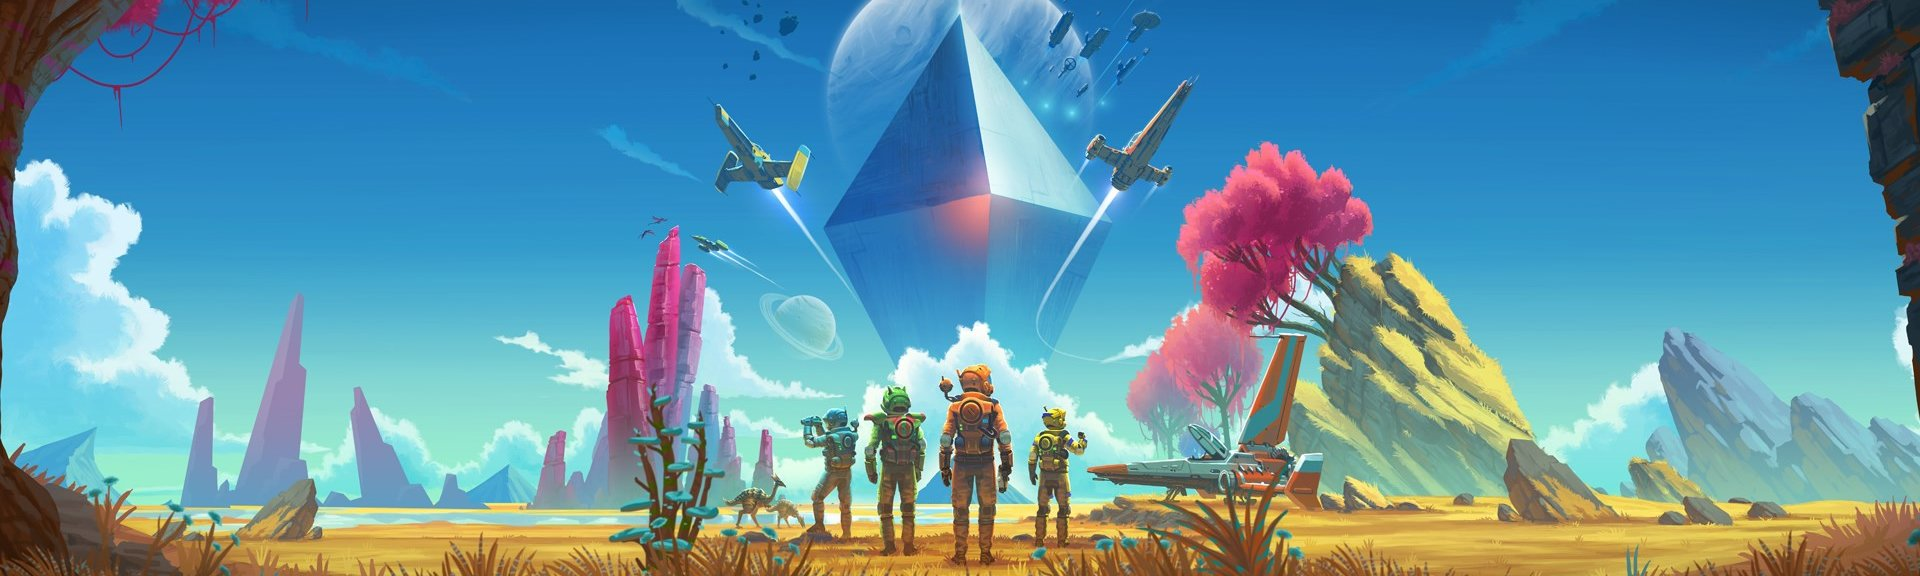 No Man's Sky Beyond Next FAQ walkthrough guides list